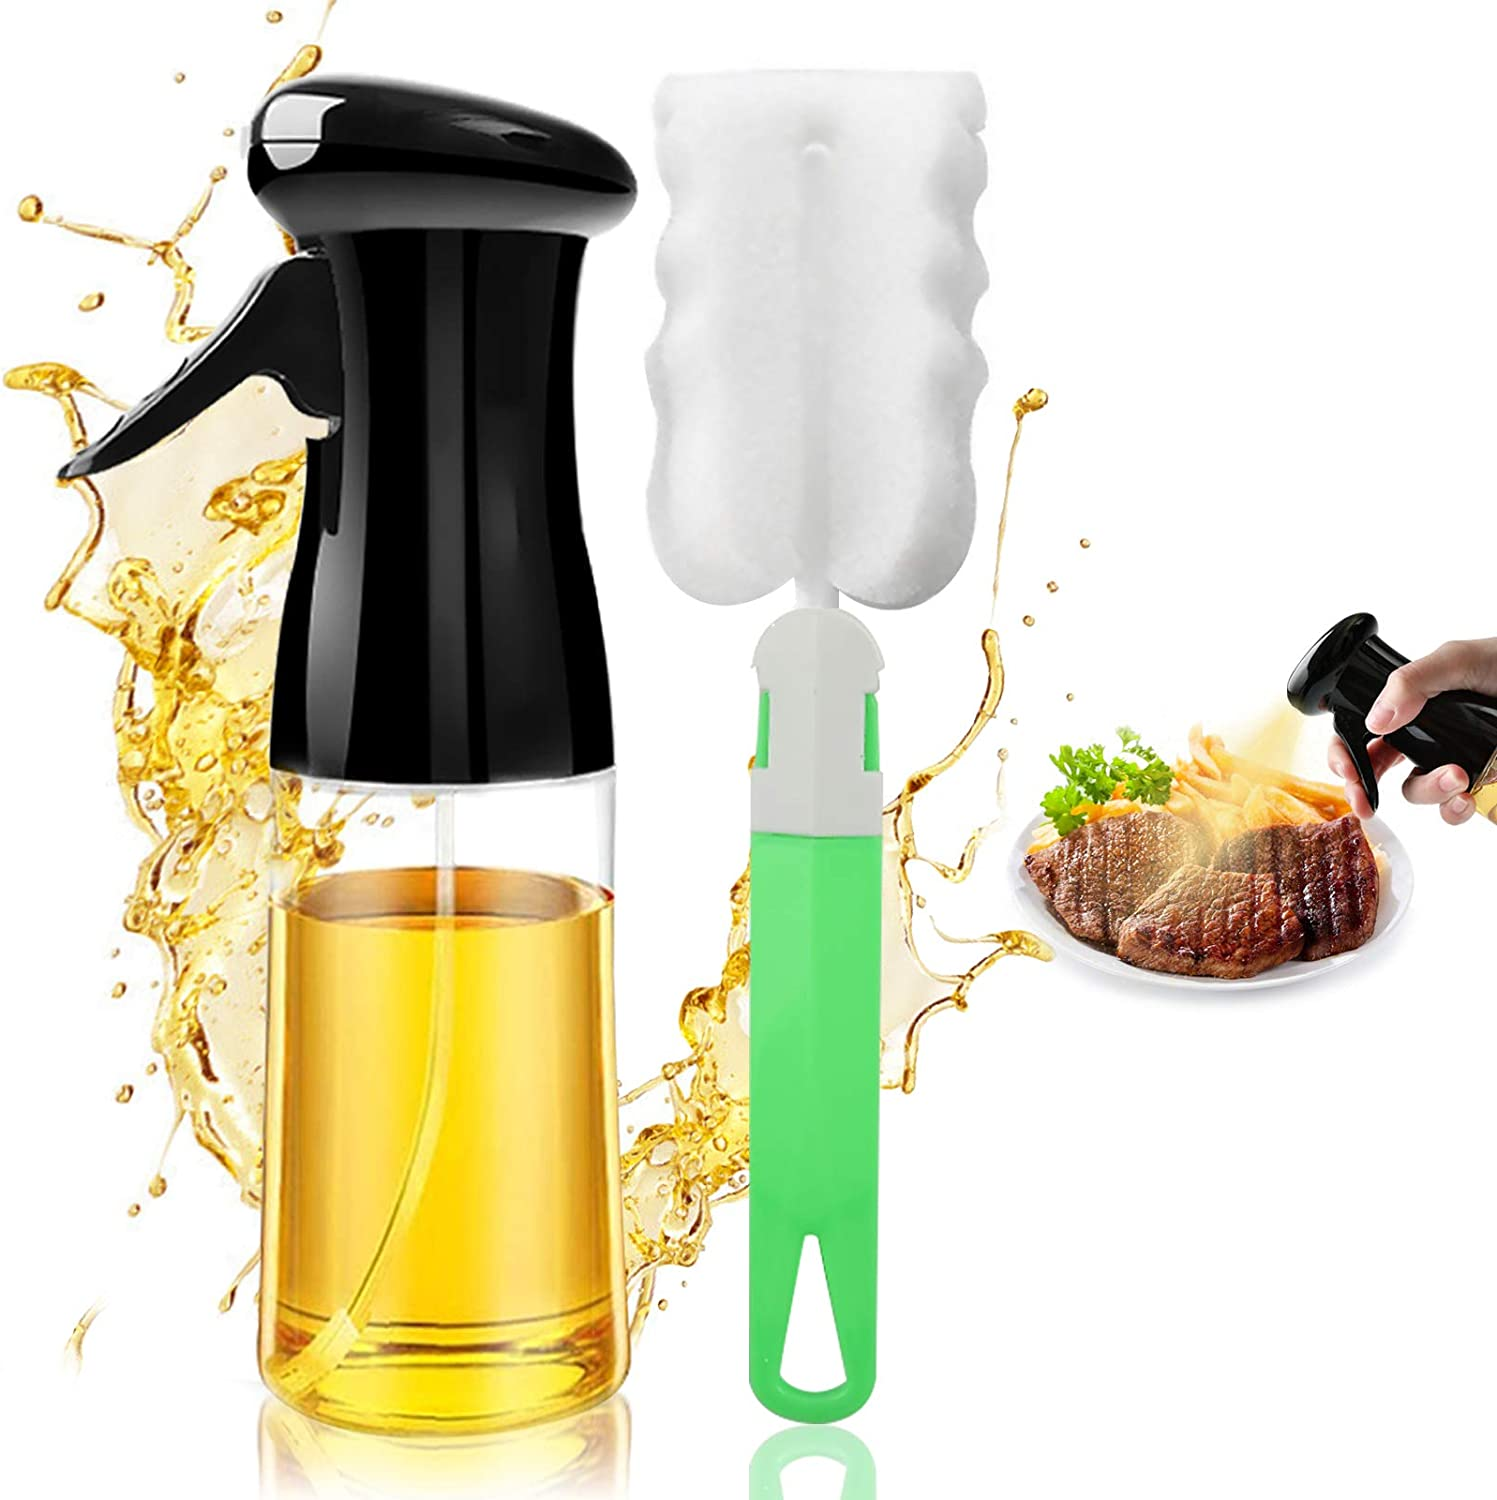 Oil Sprayer for Cooking, Reusable Oil Spray Bottle with Brush Refillable Olive Oils Dispenser, Versatile Food Grade Vinegar Spritzer PET Plastic Bottle for Air Fryer Kitchen BBQ Baking 7Oz/200ML Black